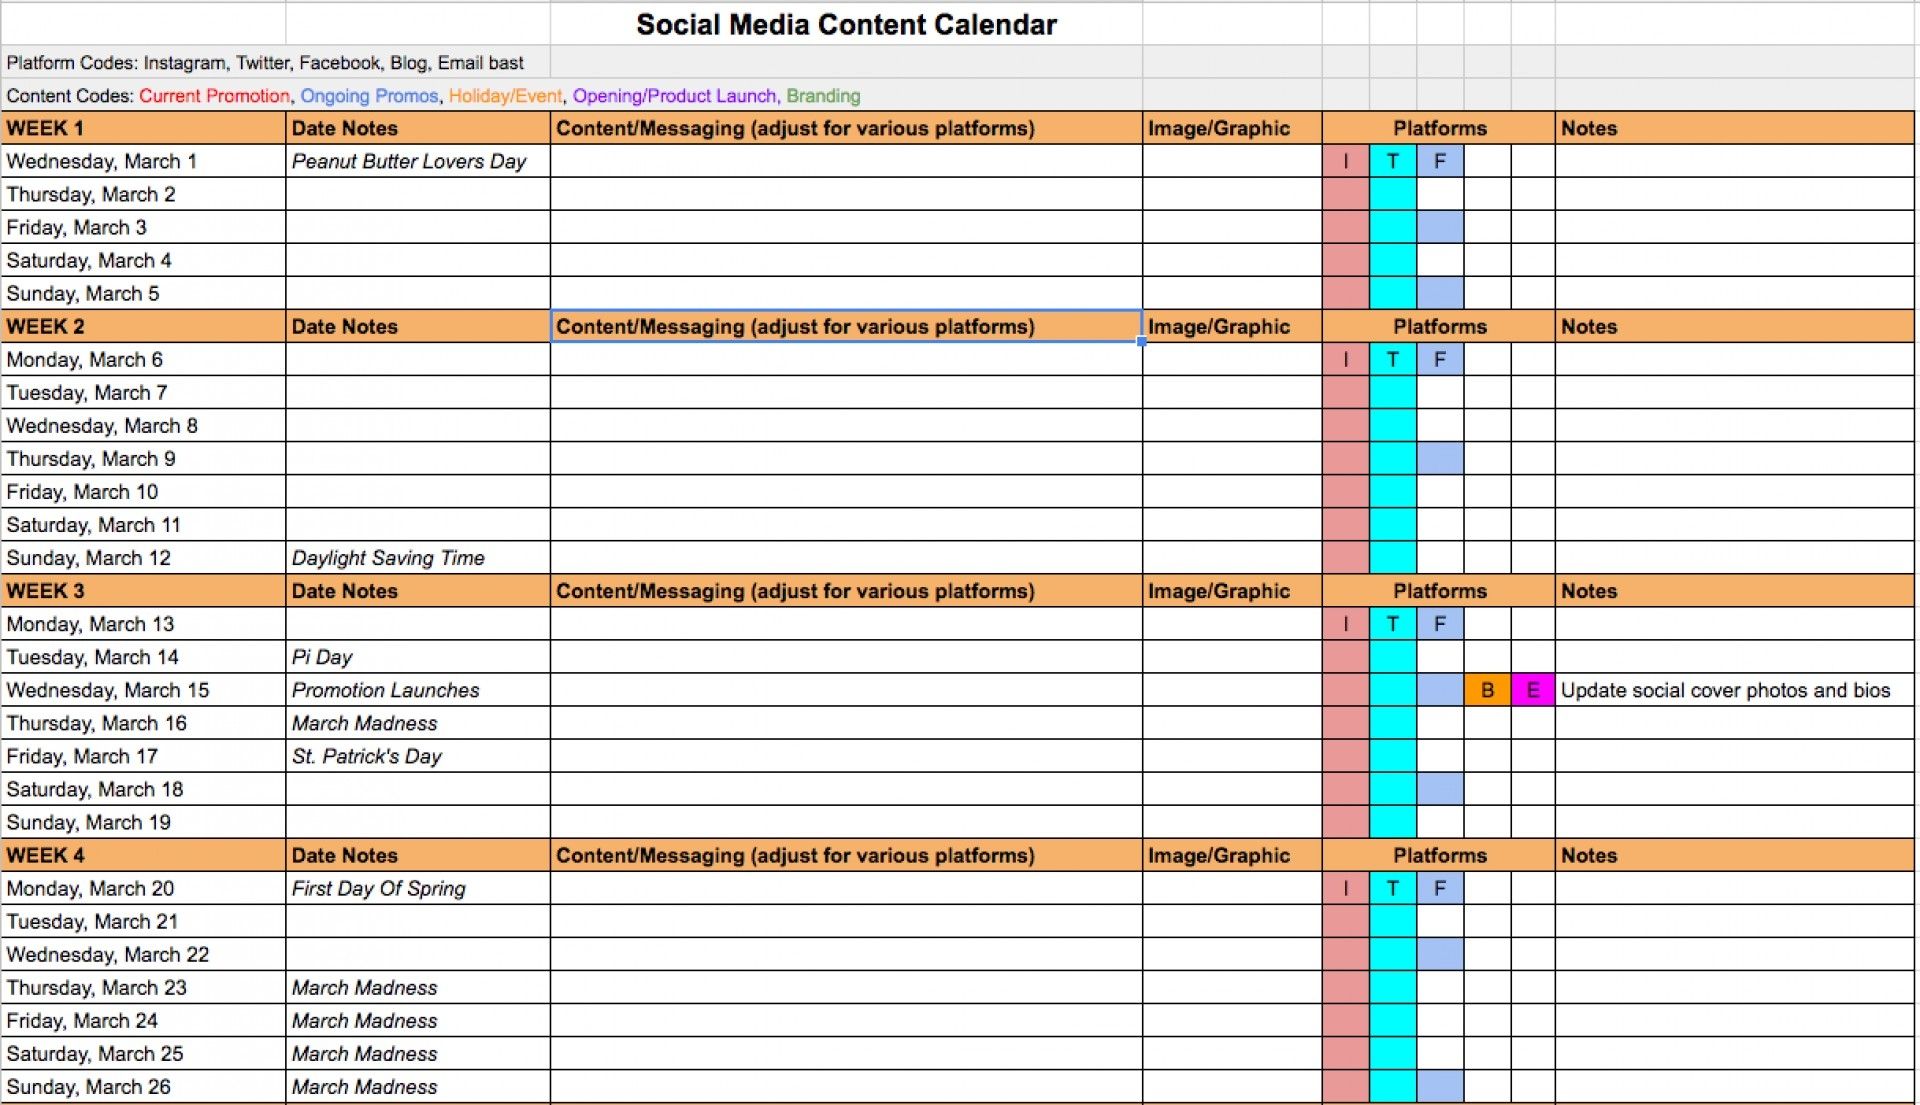 007 Template Ideas Social Media Calendar Archaicawful Creating A regarding Social Media Content Calendar Excel Template Free